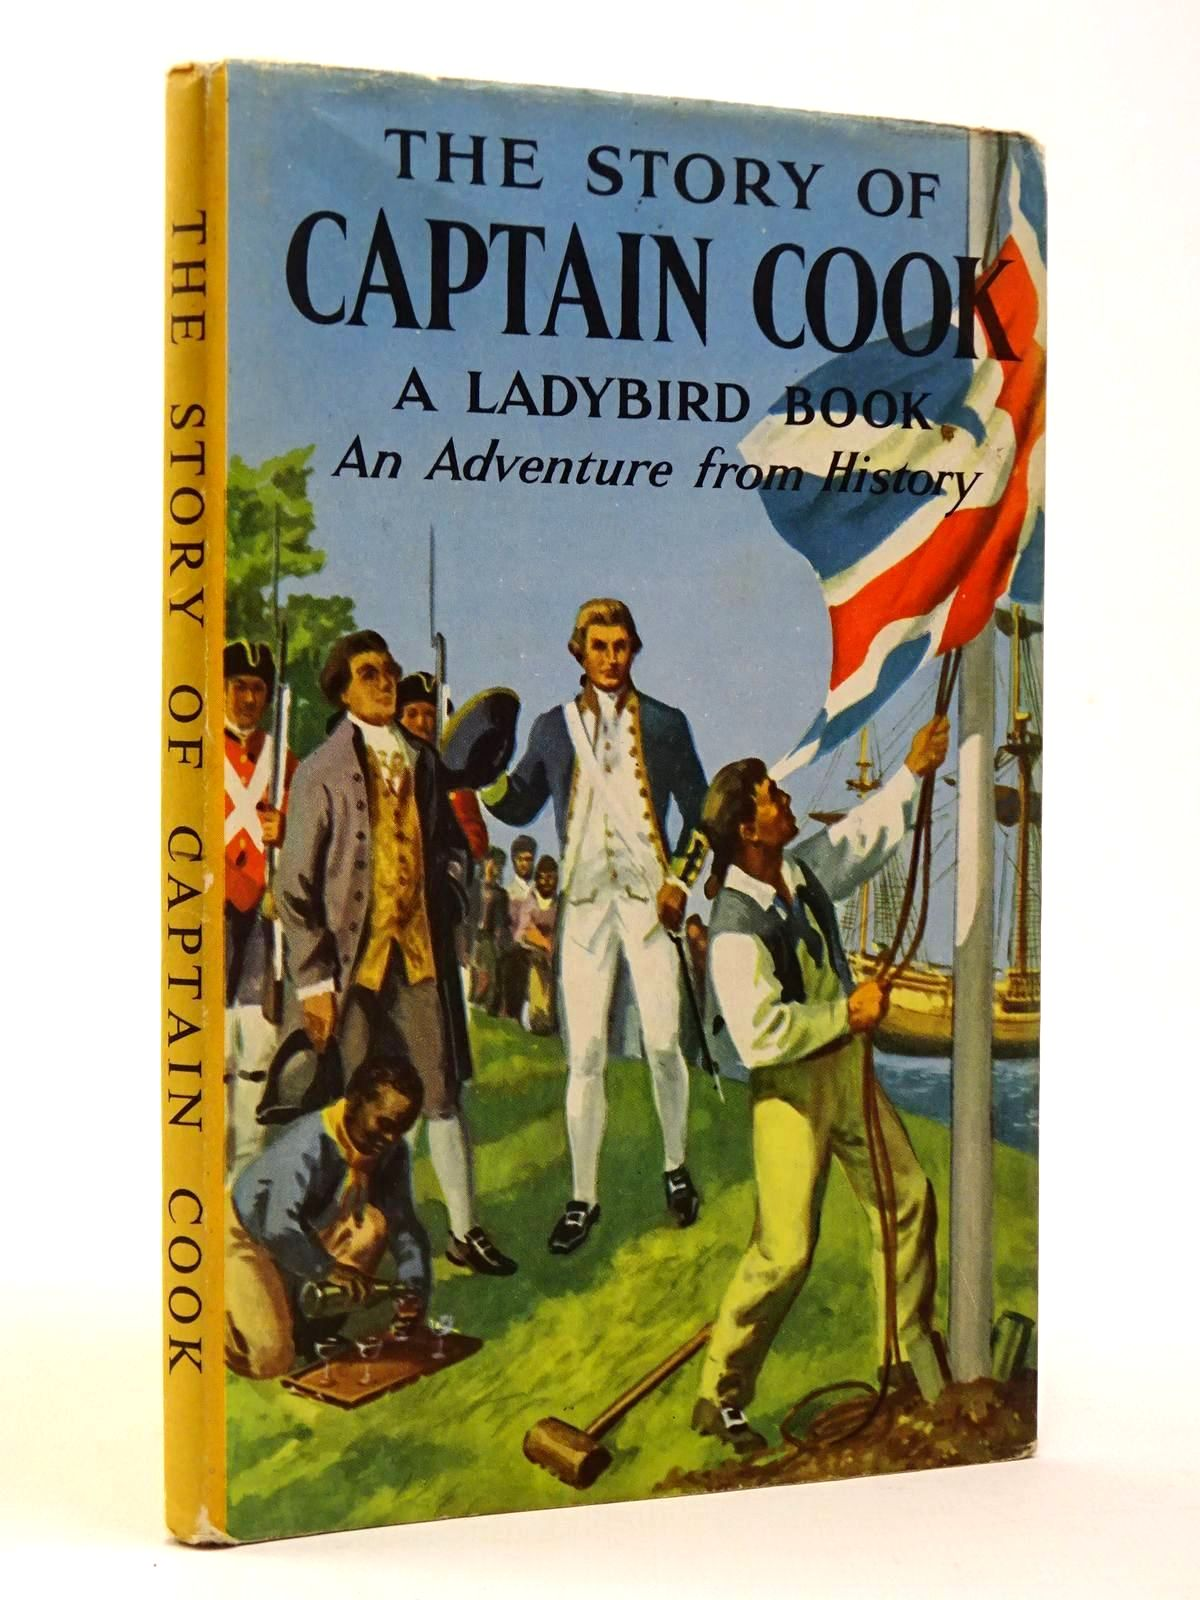 Photo of THE STORY OF CAPTAIN COOK written by Peach, L. Du Garde illustrated by Kenney, John published by Wills & Hepworth Ltd. (STOCK CODE: 2129804)  for sale by Stella & Rose's Books